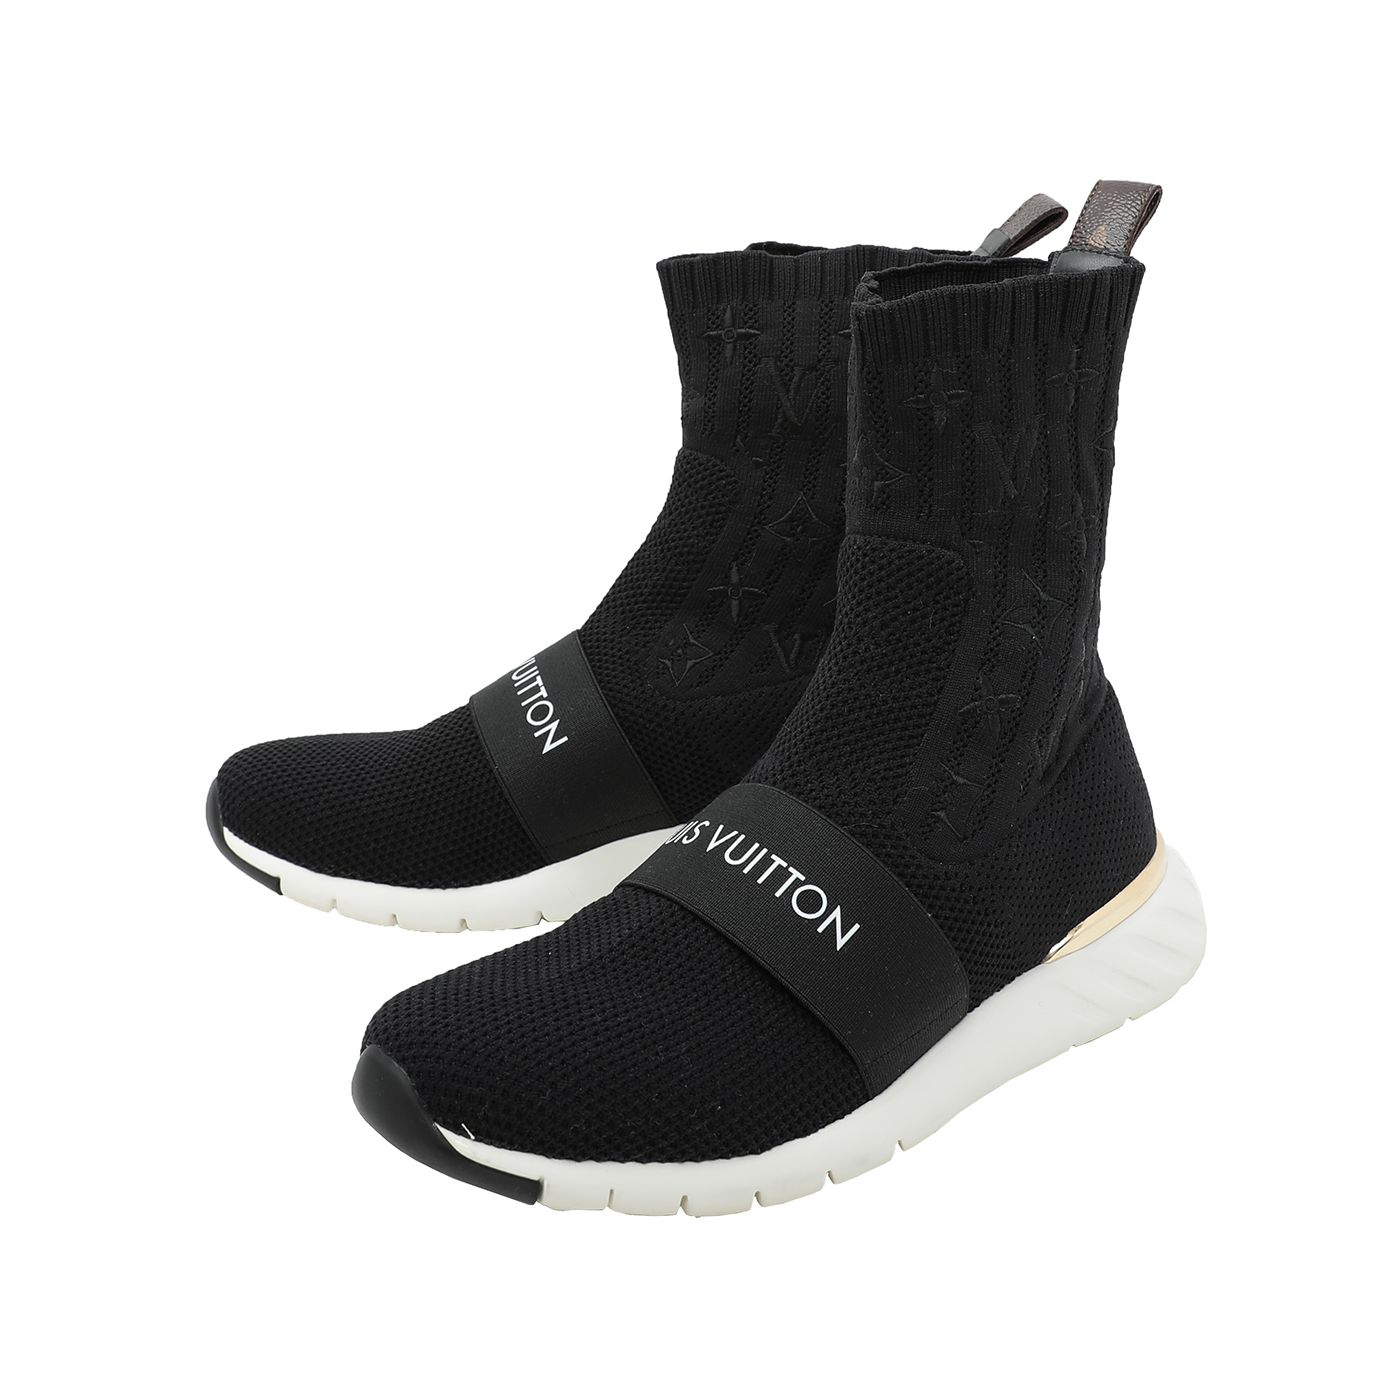 Louis Vuitton Black Aftergame Sneakers Boots 37